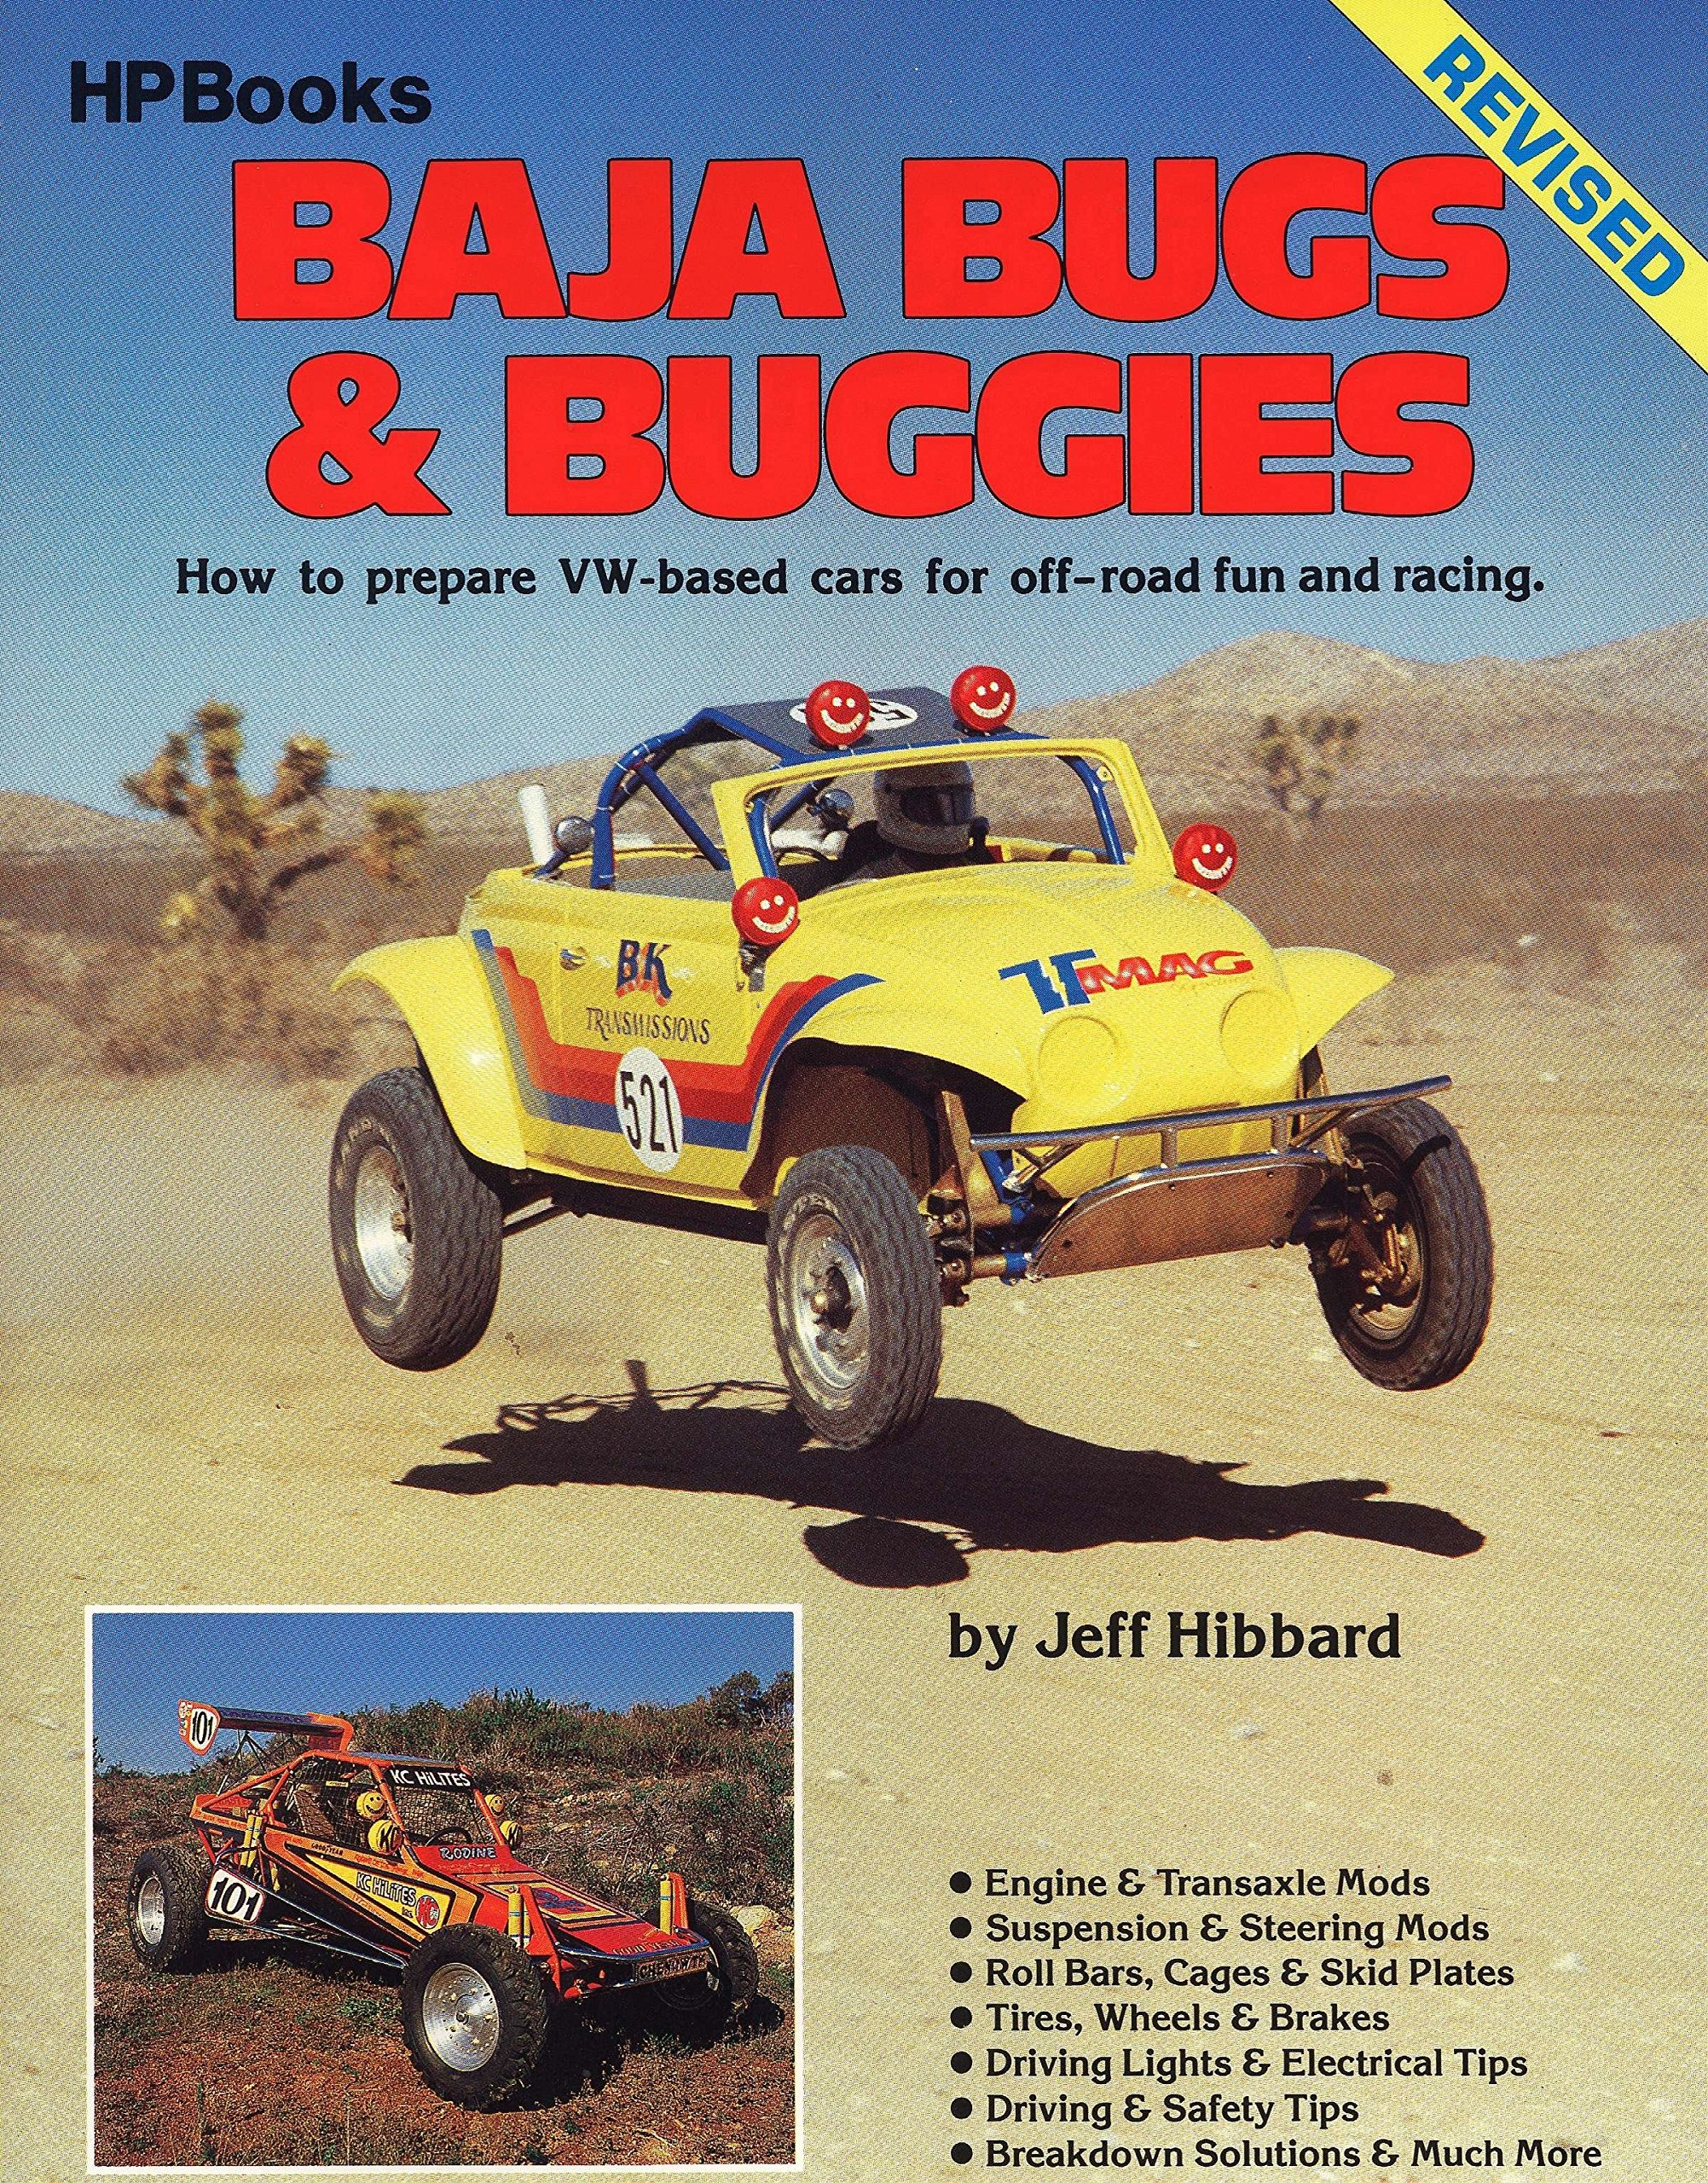 Baja Bugs and Buggies: How to prepare VW-based cars for off-road fun and  racing: Jeff Hibbard: 9780895861863: Amazon.com: Books